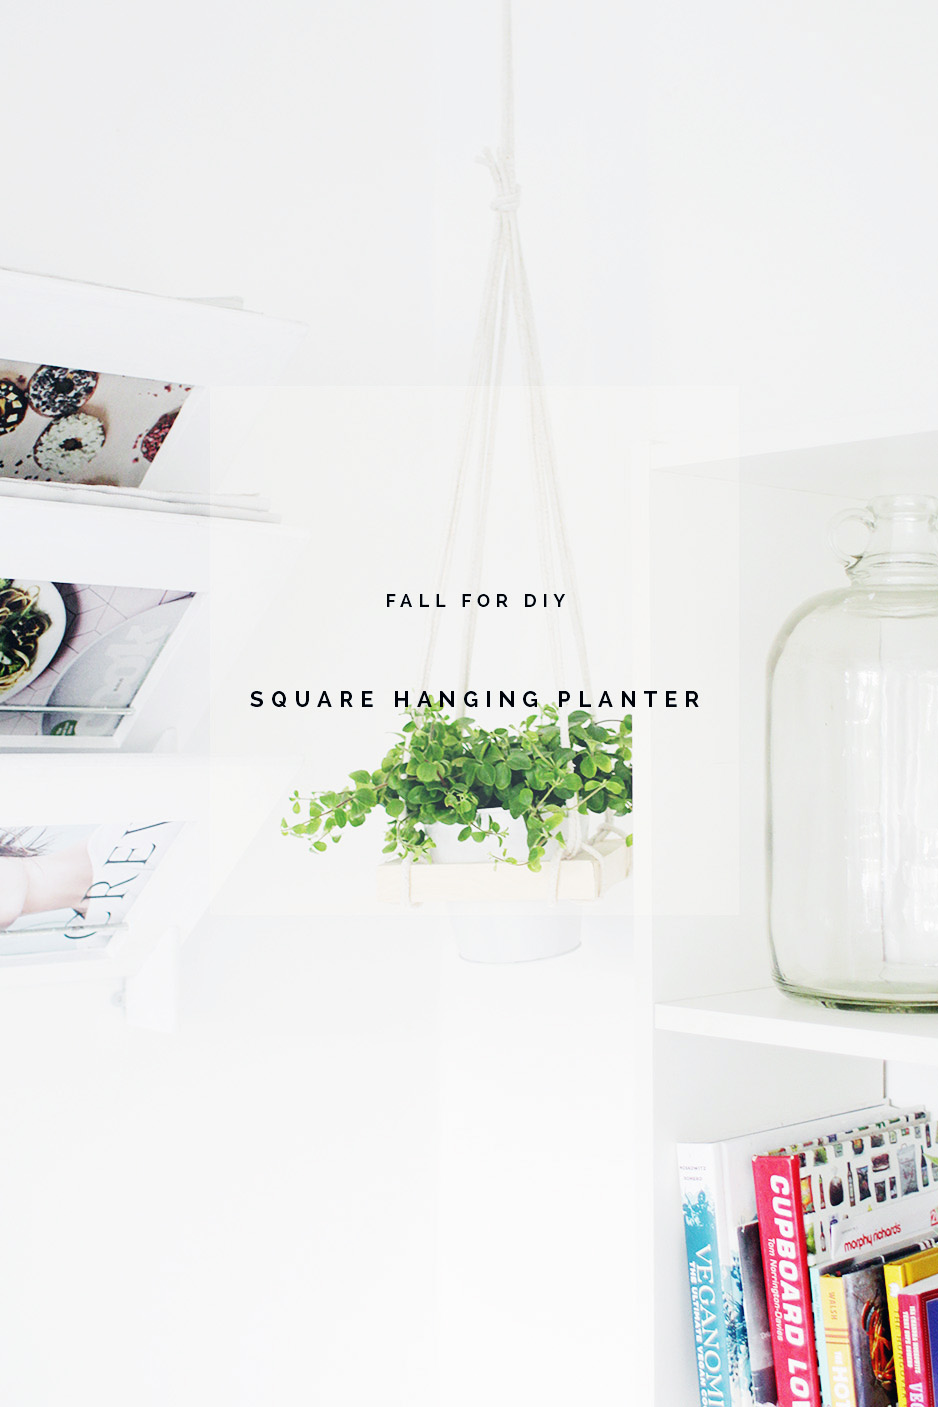 Fall For DIY Sqaure Hanging Planter DIY